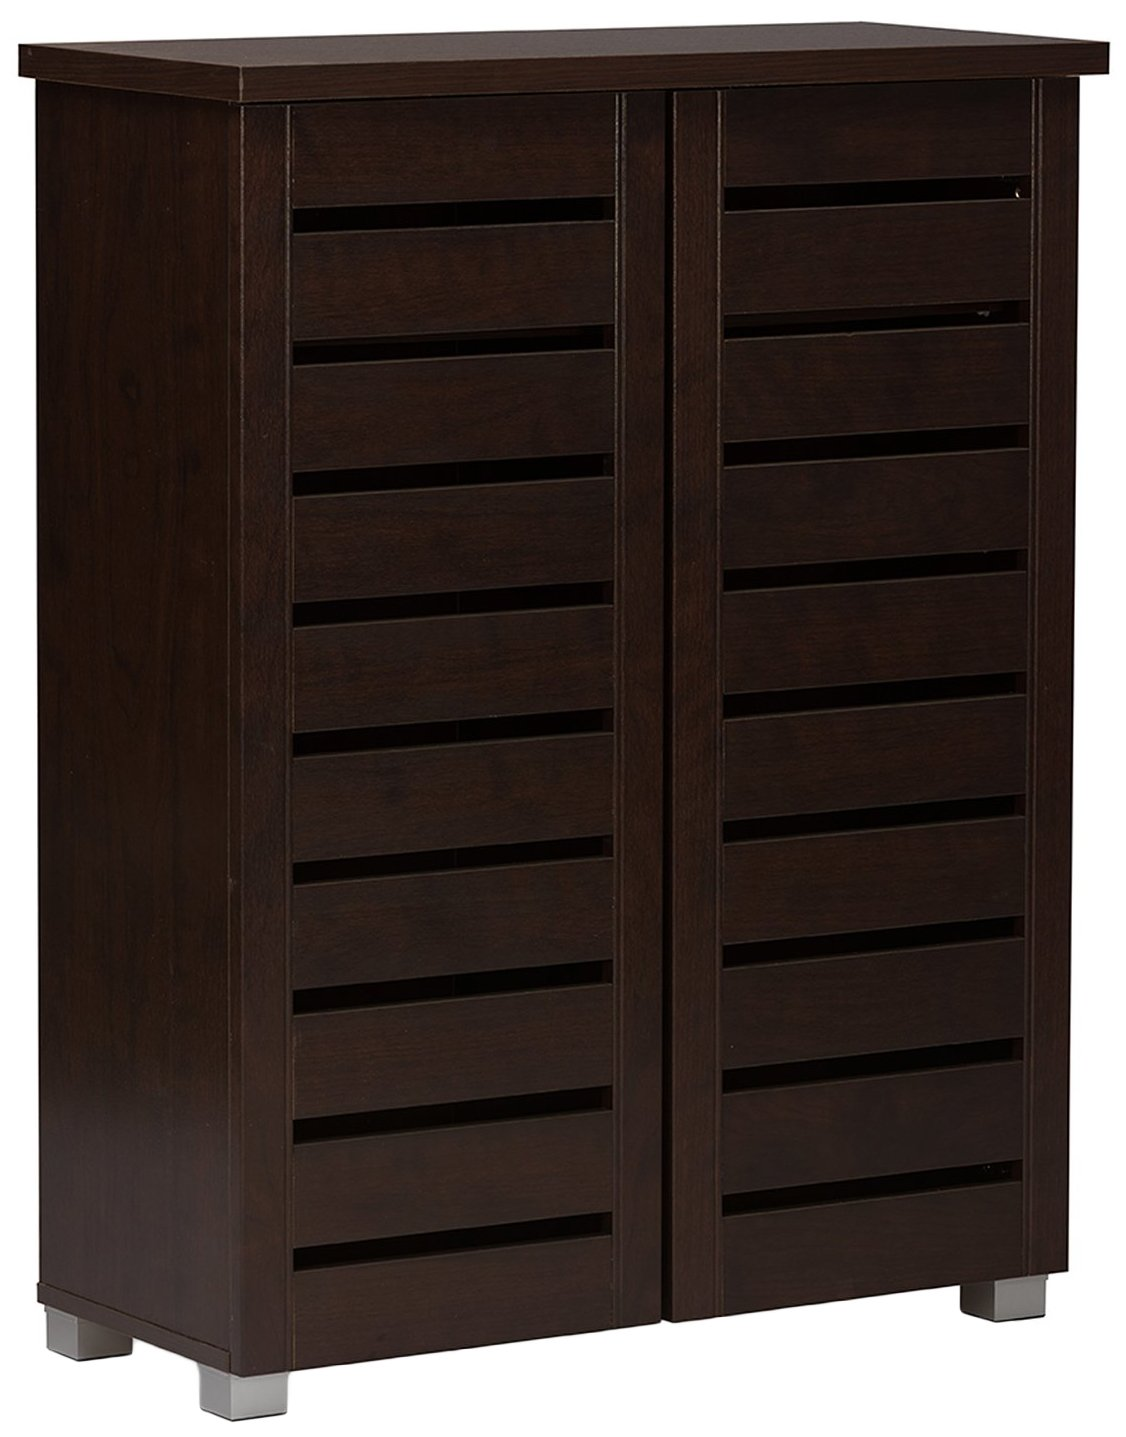 Baxton Studio Wholesale Interiors Adalwin Modern and Contemporary 2-Door Dark Brown Wooden Entryway Shoes Storage Cabinet by Baxton Studio